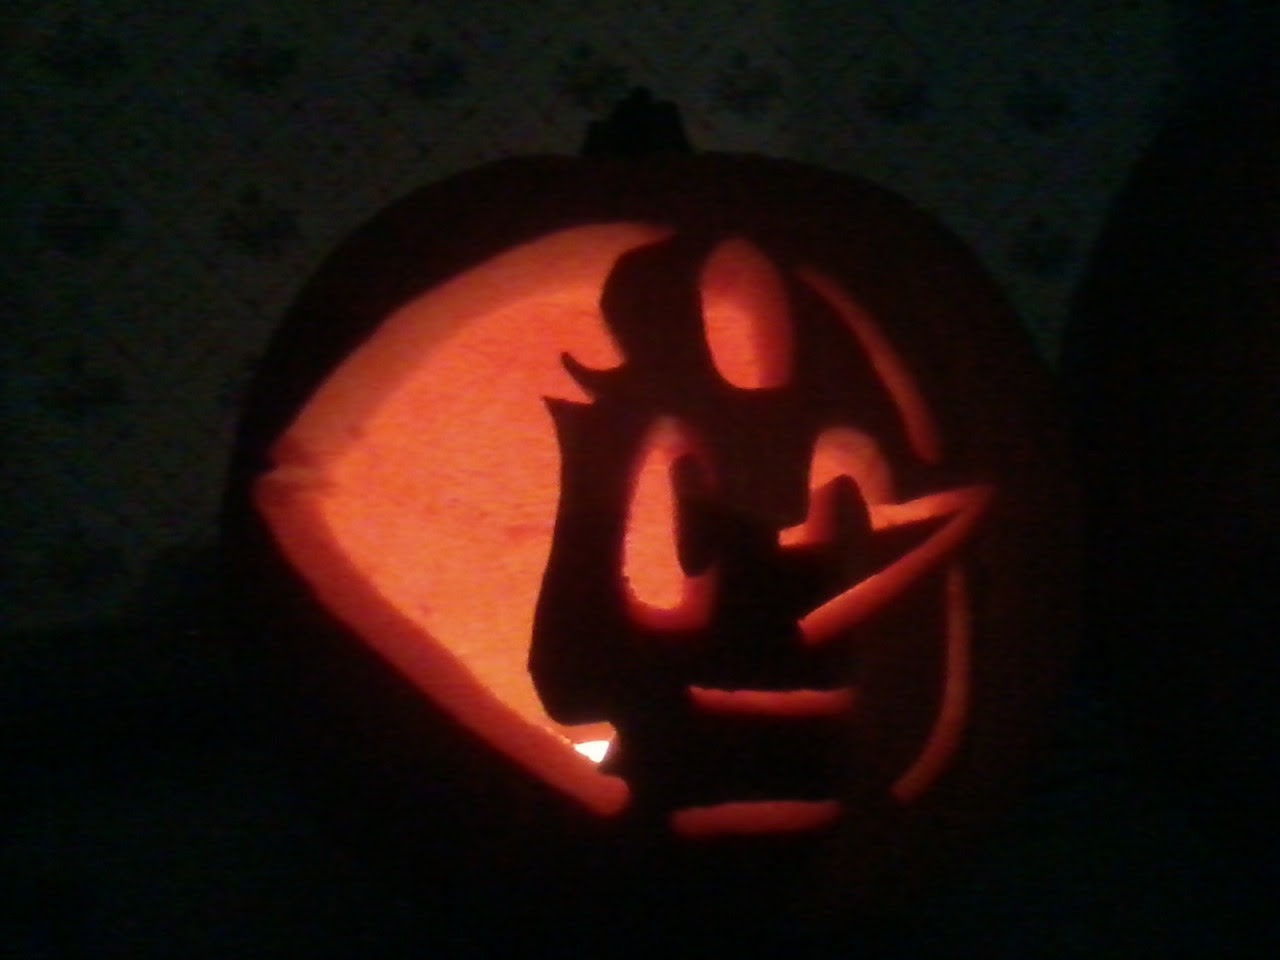 Here's my Pearl Jack O Lantern for this Halloween. Had a lot of fun doing this, been a while since I've done one. Just kinda wish I didn't mess up her cheek though :/